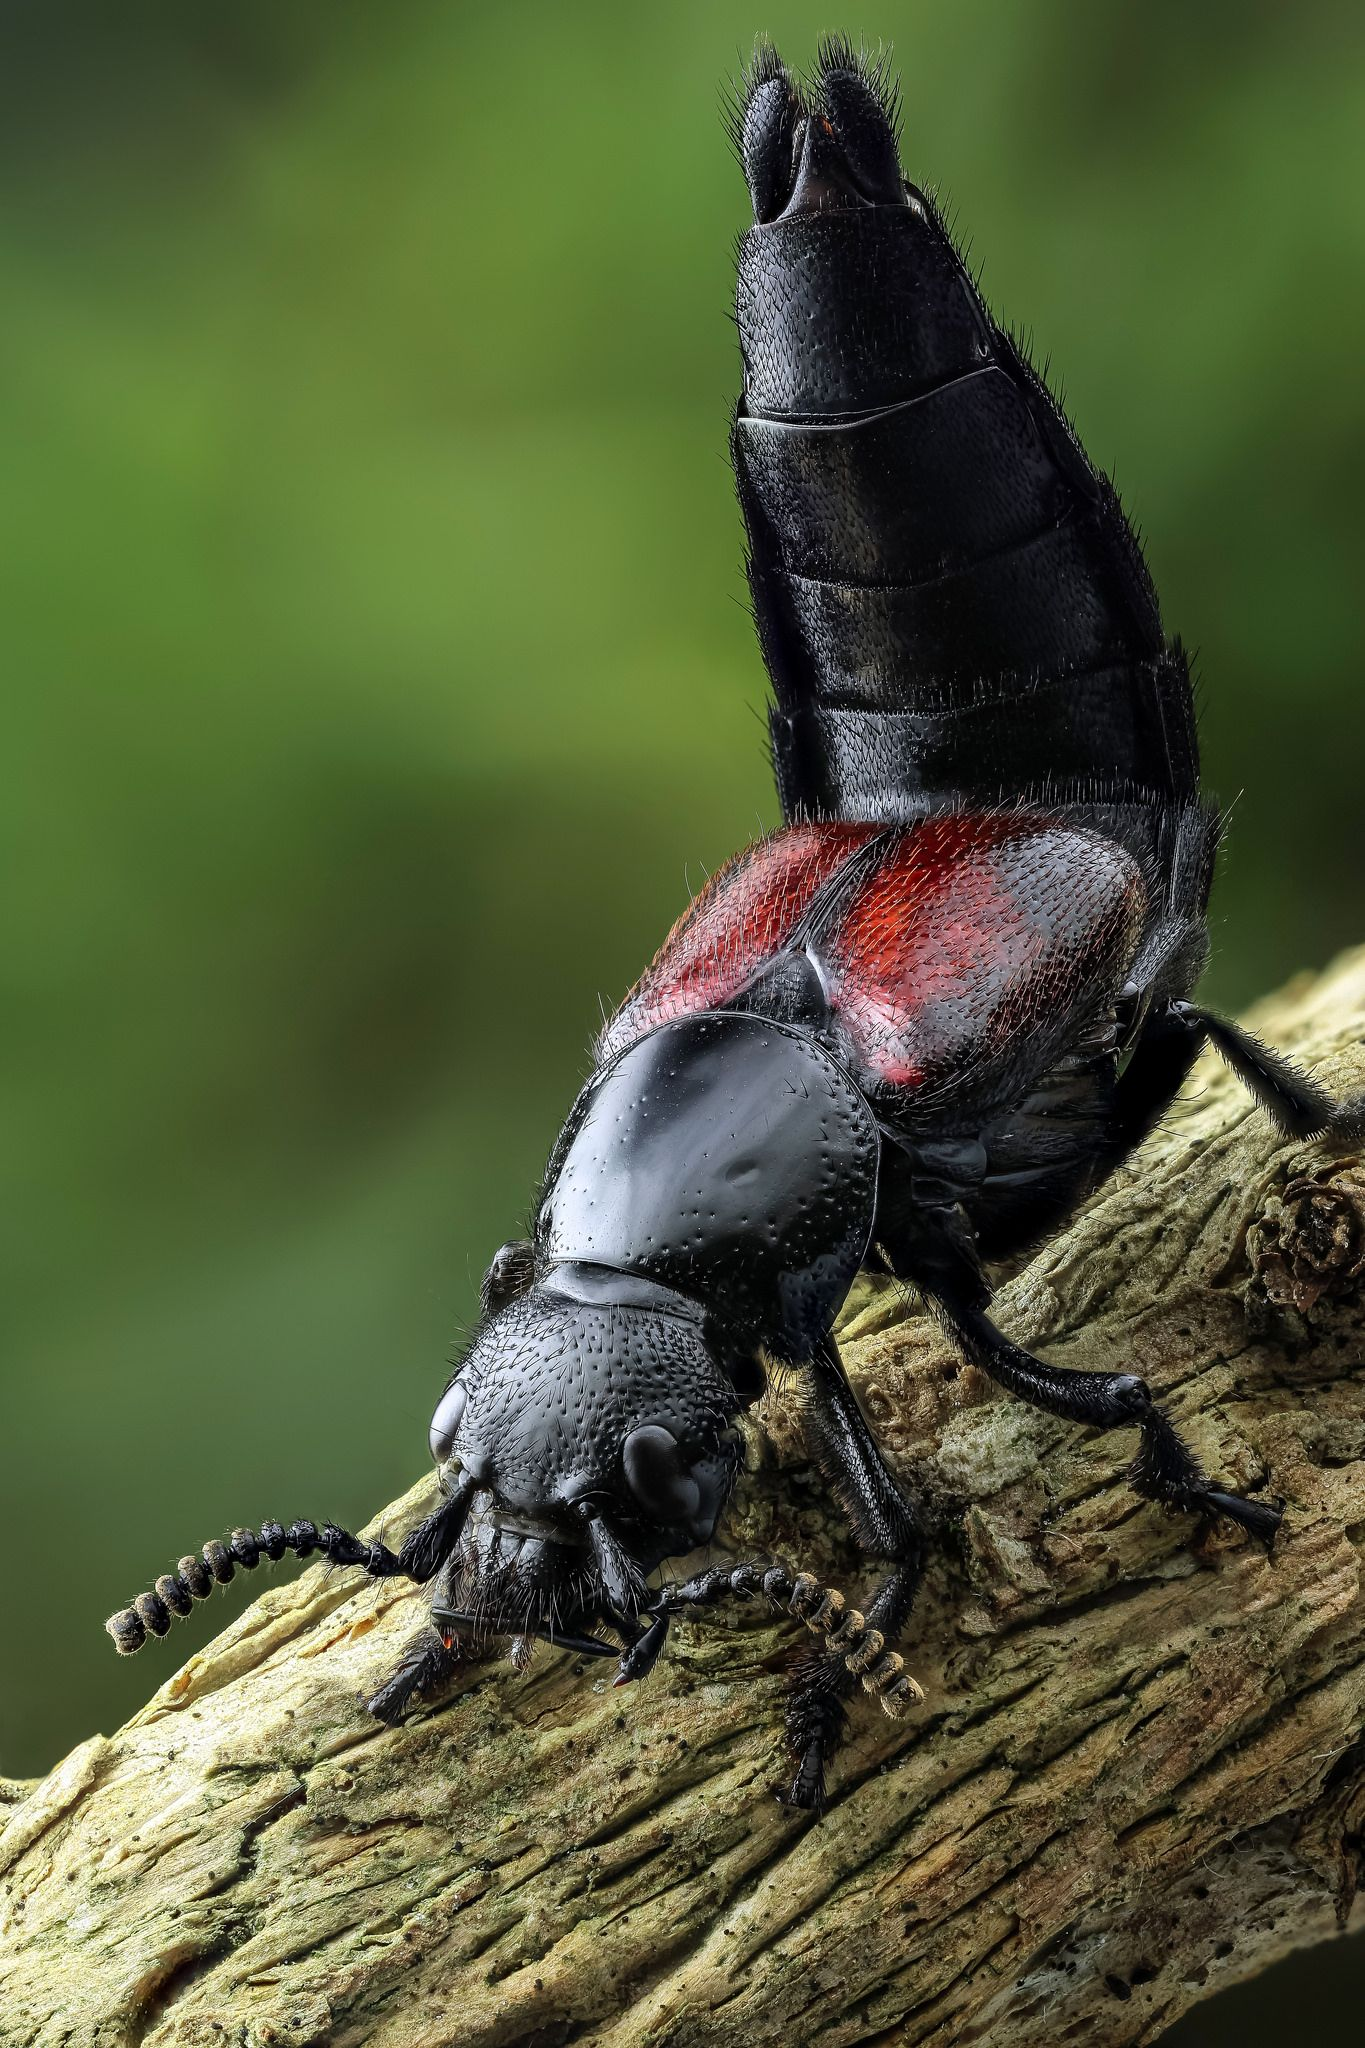 Giant rove beetle | Insects and Spiders | Insects, Beetle ...